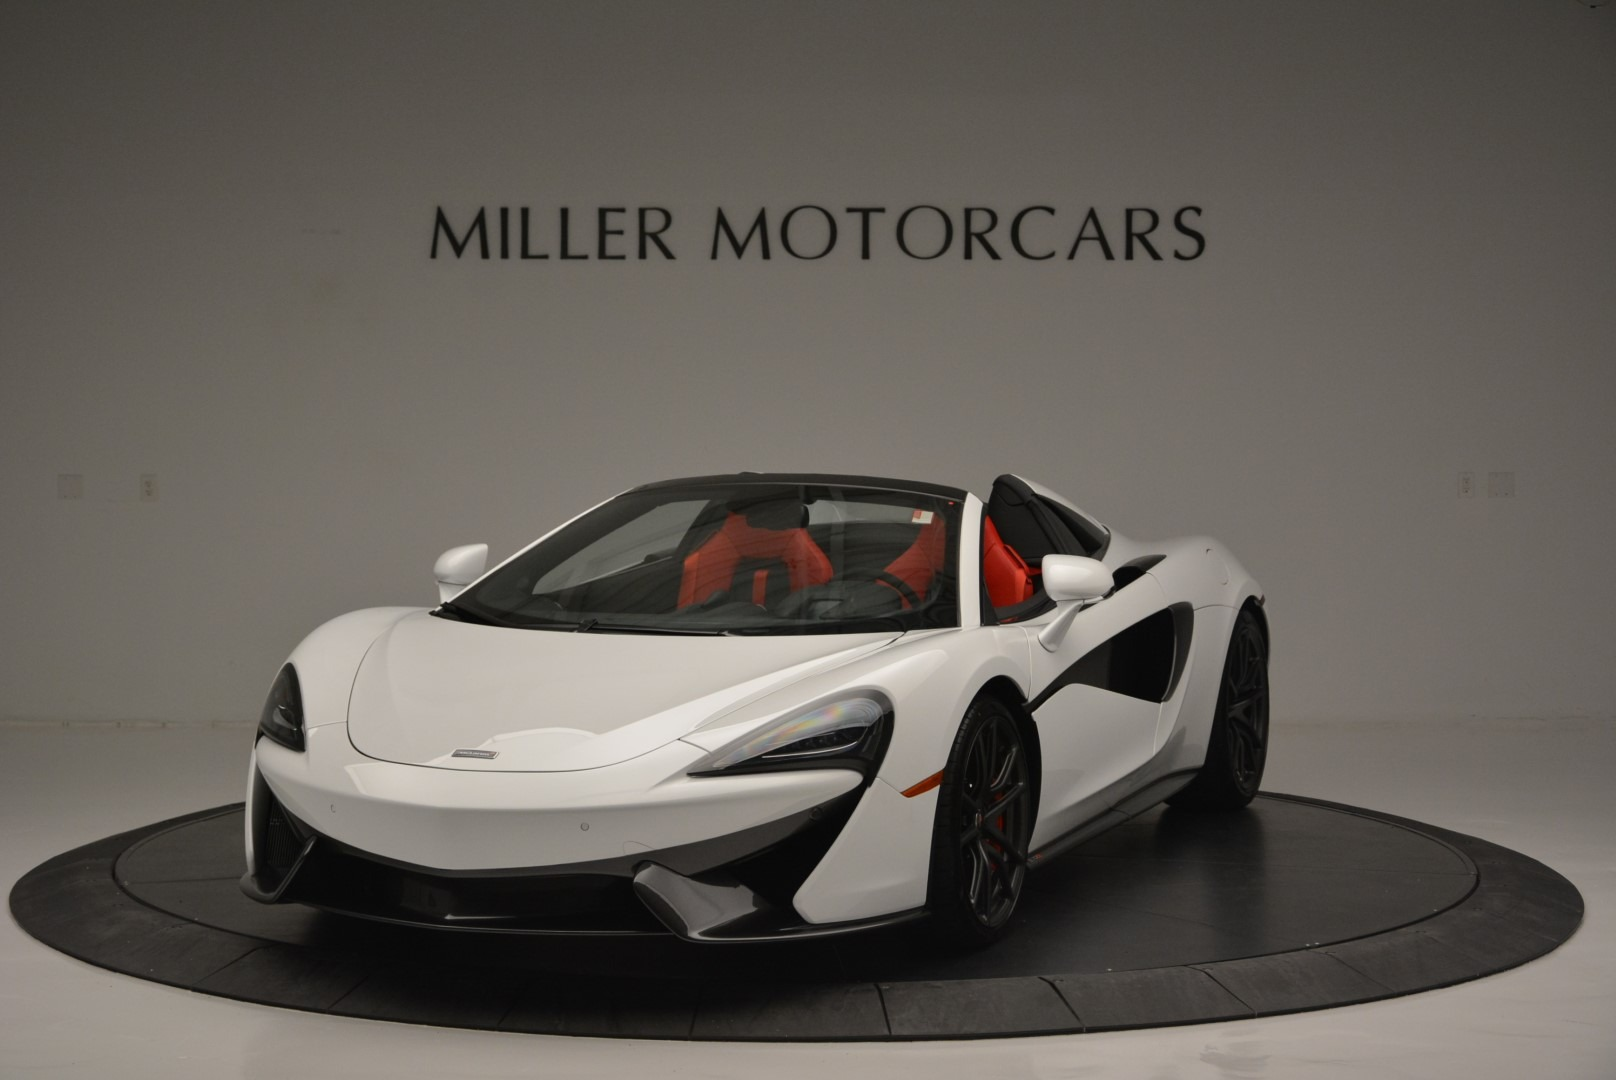 Used 2018 McLaren 570S Spider For Sale In Greenwich, CT. Alfa Romeo of Greenwich, 3149 2341_main